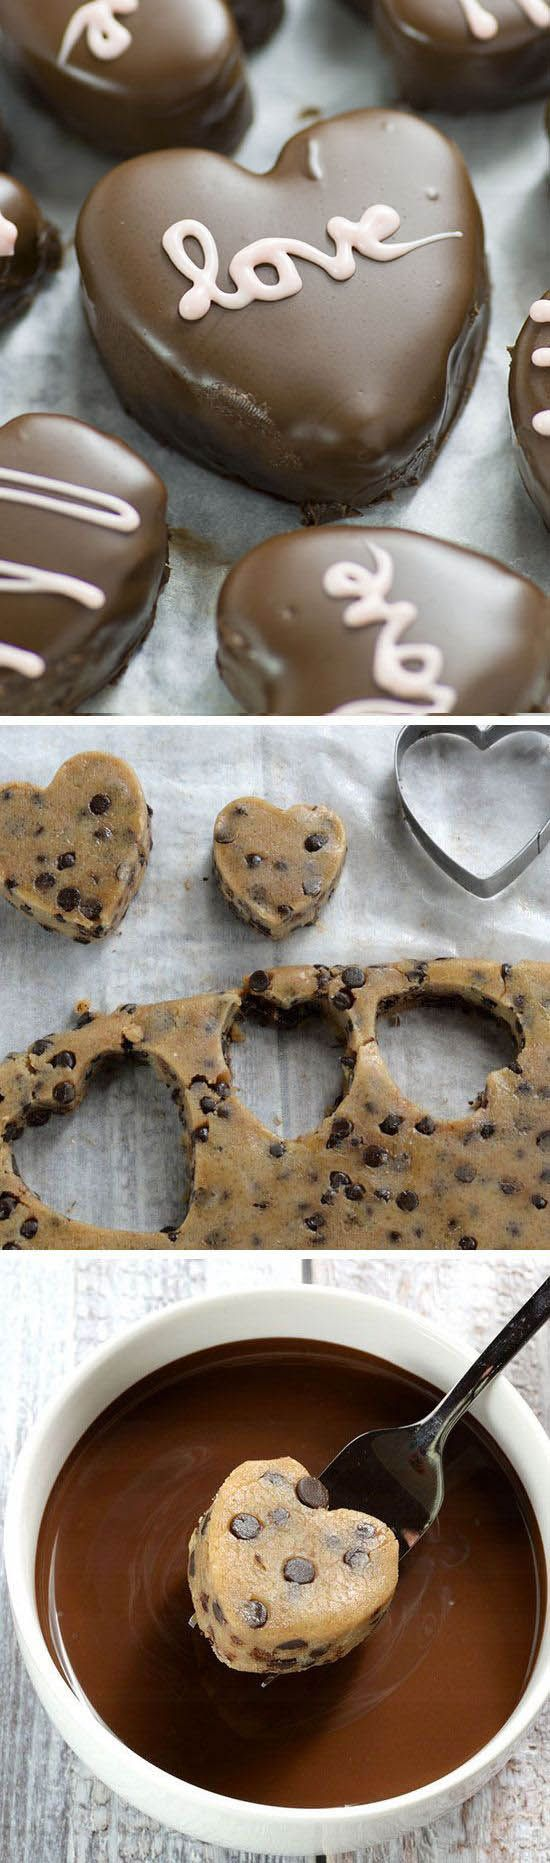 Perfect Valentines day treat for your honey - Chocolate Chip Cookie Dough Valent...